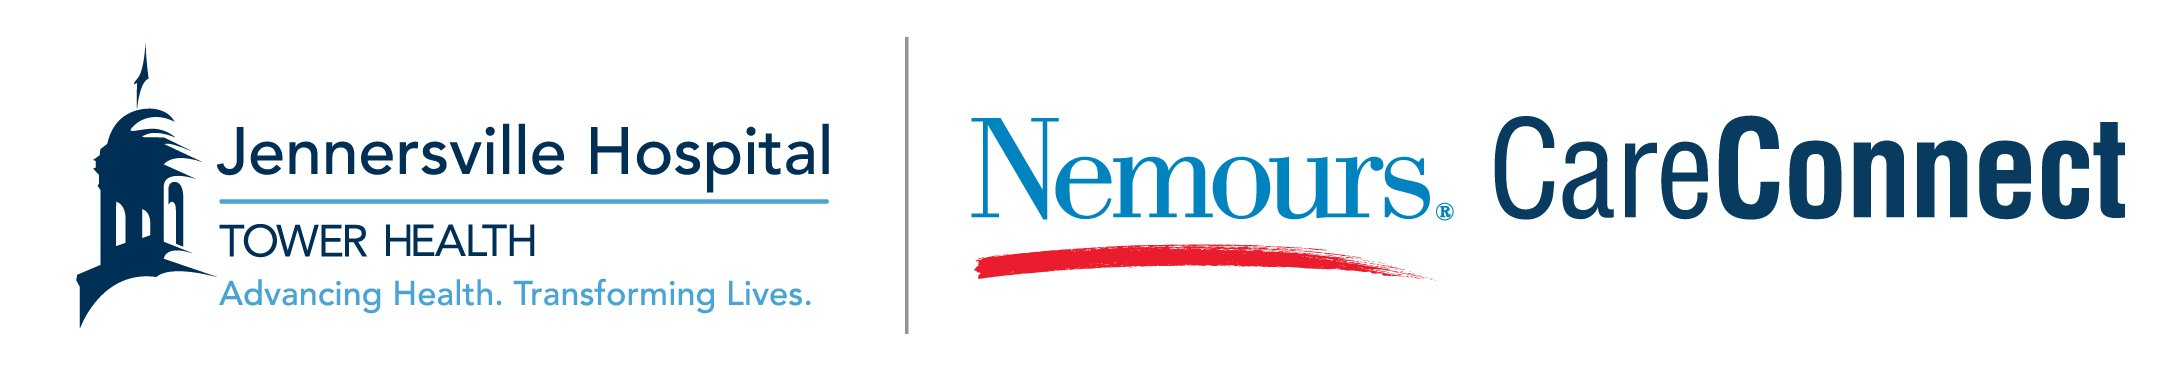 Nemours CareConnect | Jennersville Hospital | West Grove, PA